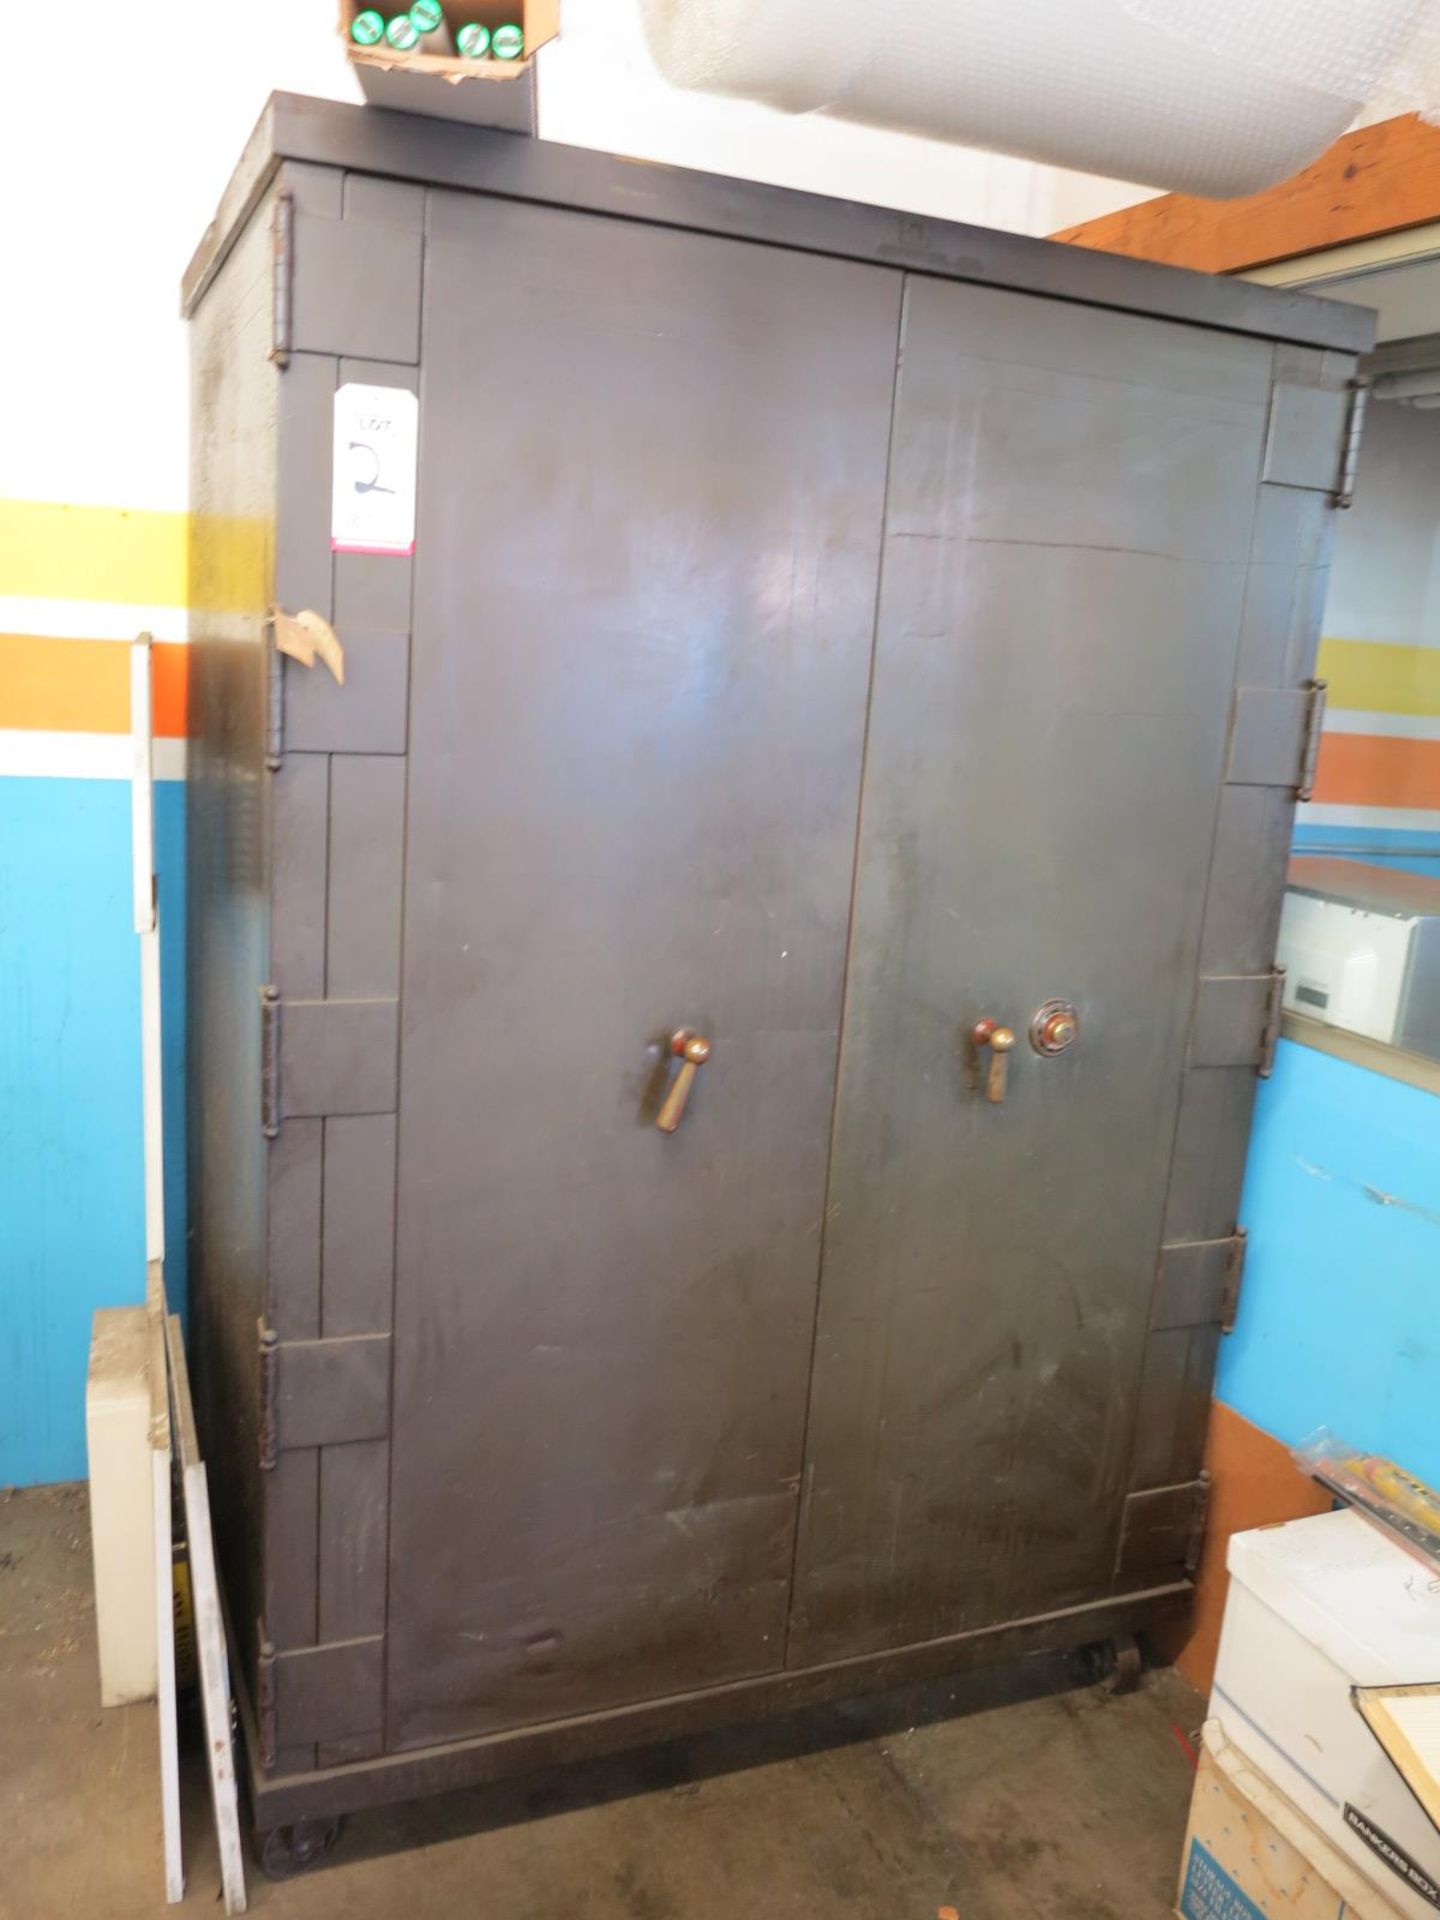 Lot 2 - 2-DOOR FLOOR SAFE ON STEEL CASTERS, W/ YALE COMBINATION DIAL LOCKING MECHANISM, OWNER WILL SUPPLY